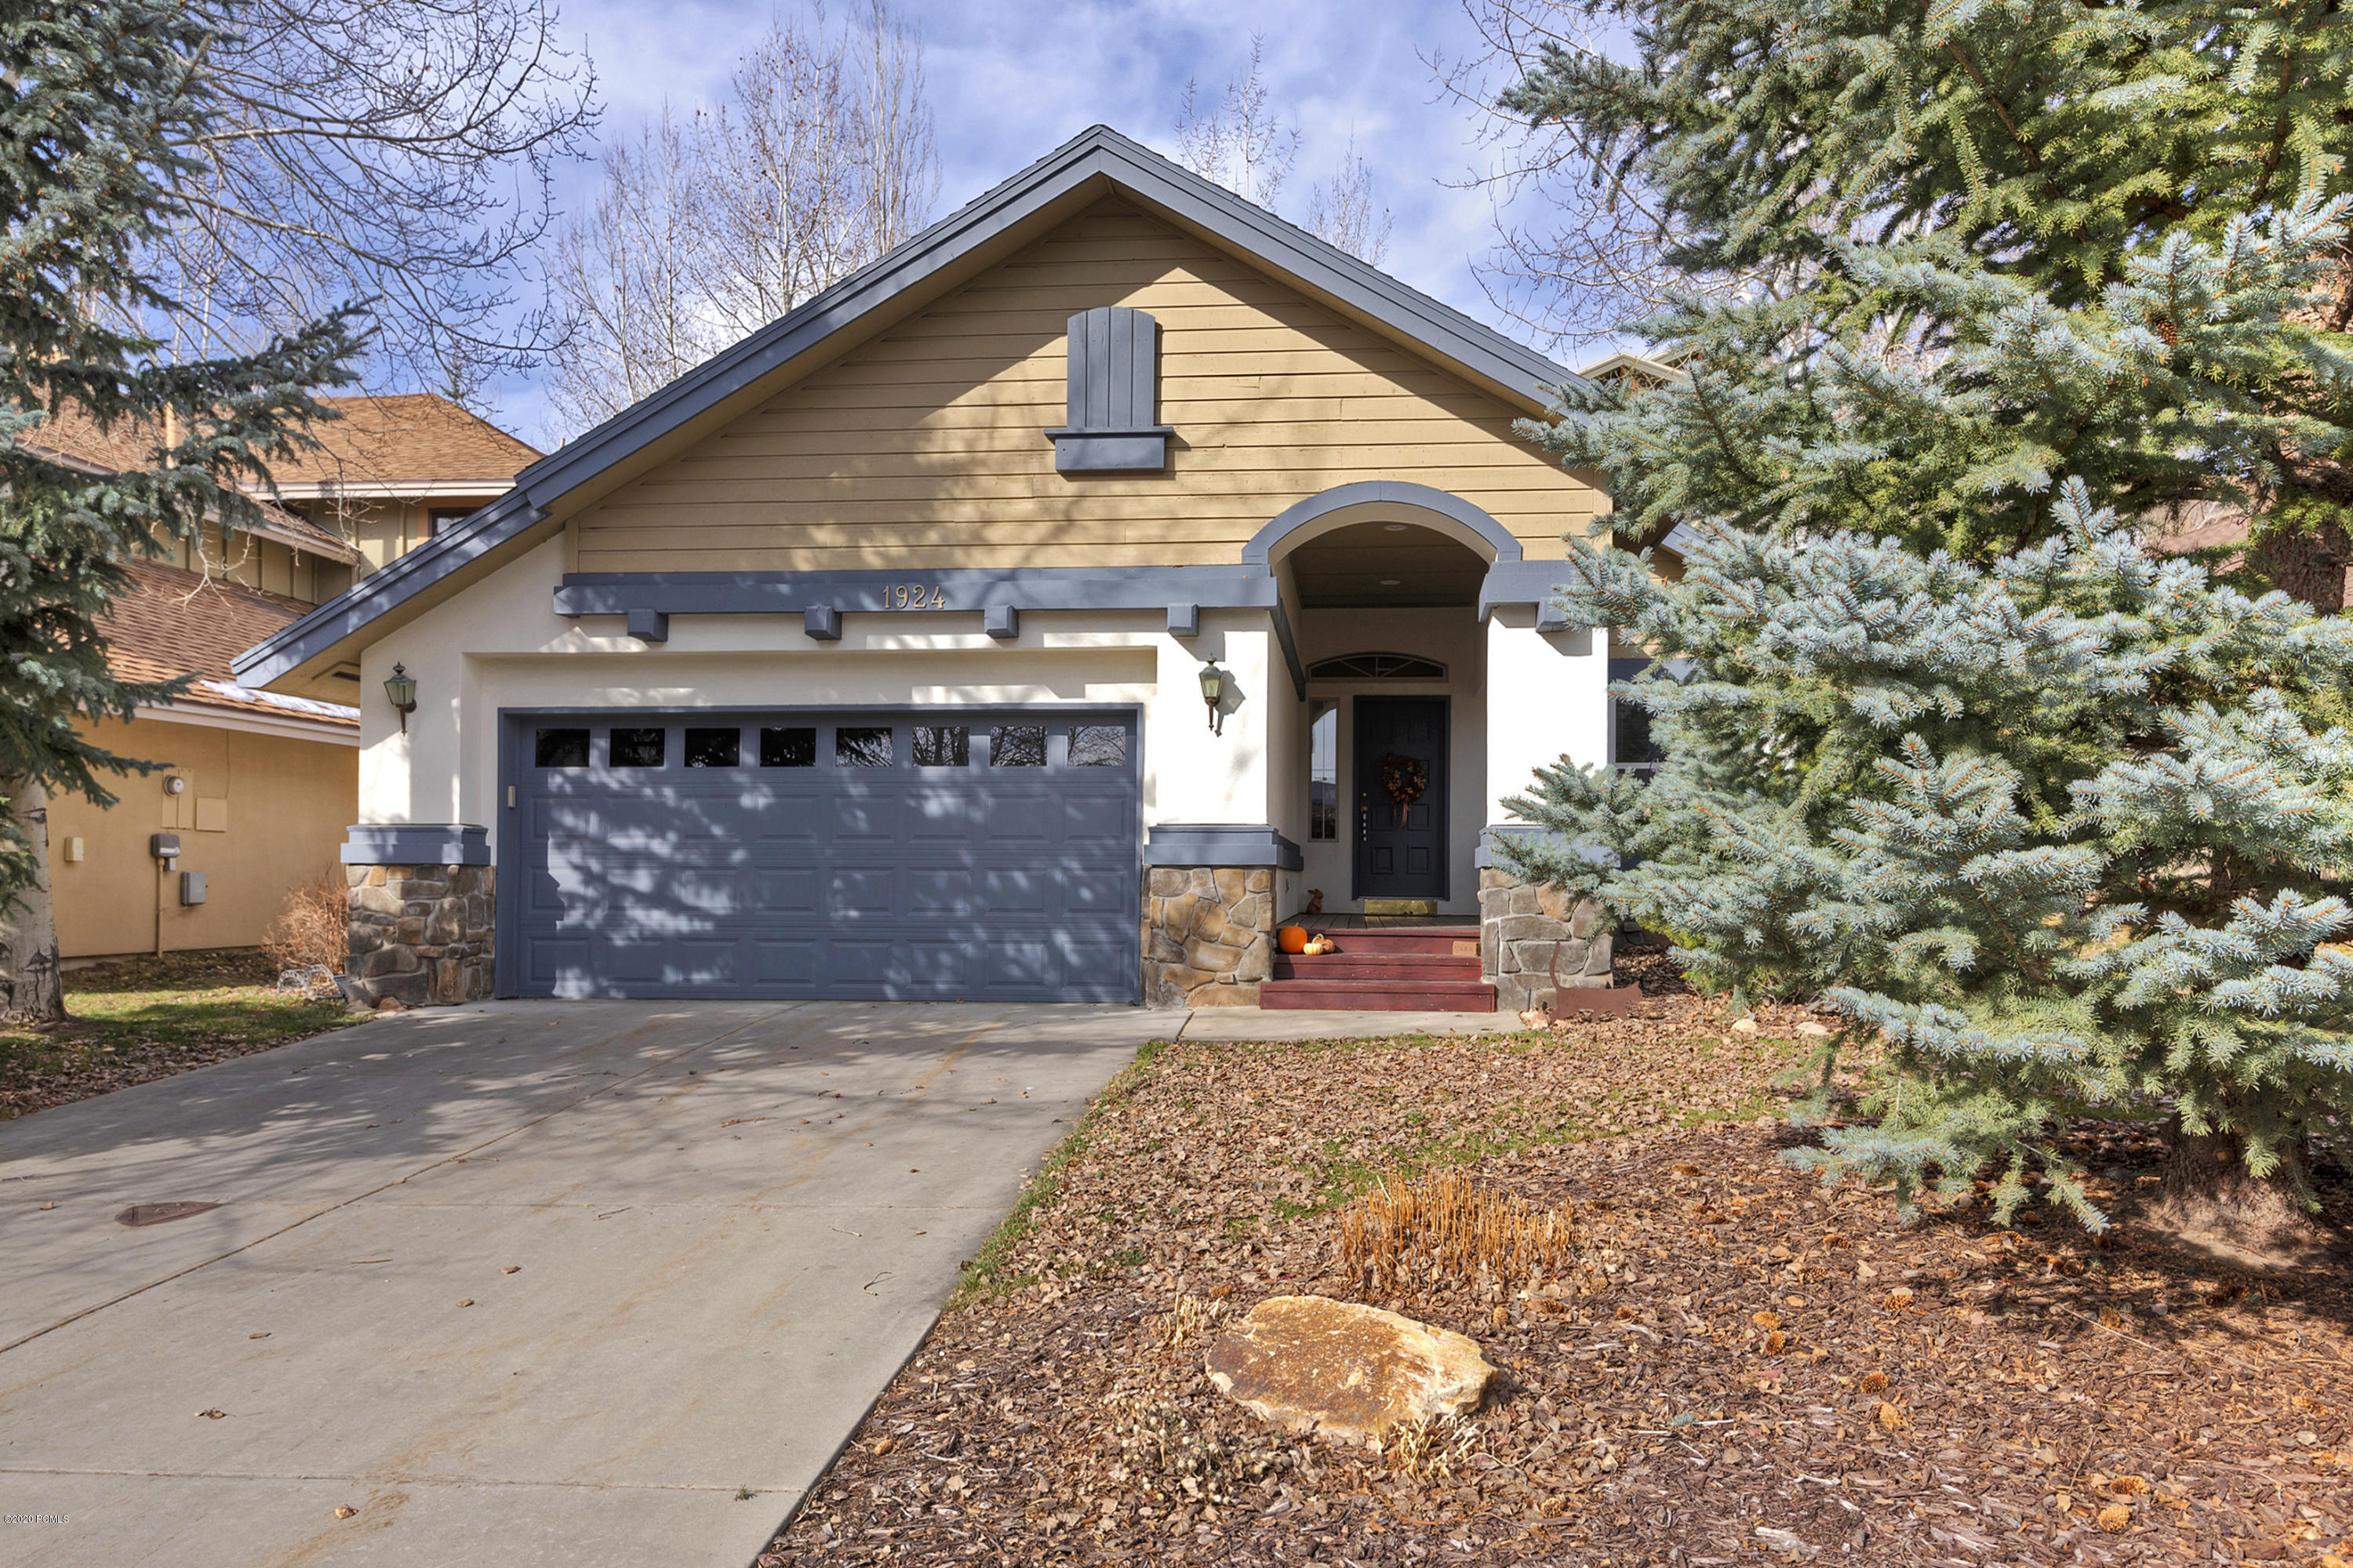 1924 Roffe Road, Park City, Utah 84098, 3 Bedrooms Bedrooms, ,2 BathroomsBathrooms,Single Family,For Sale,Roffe,12004525